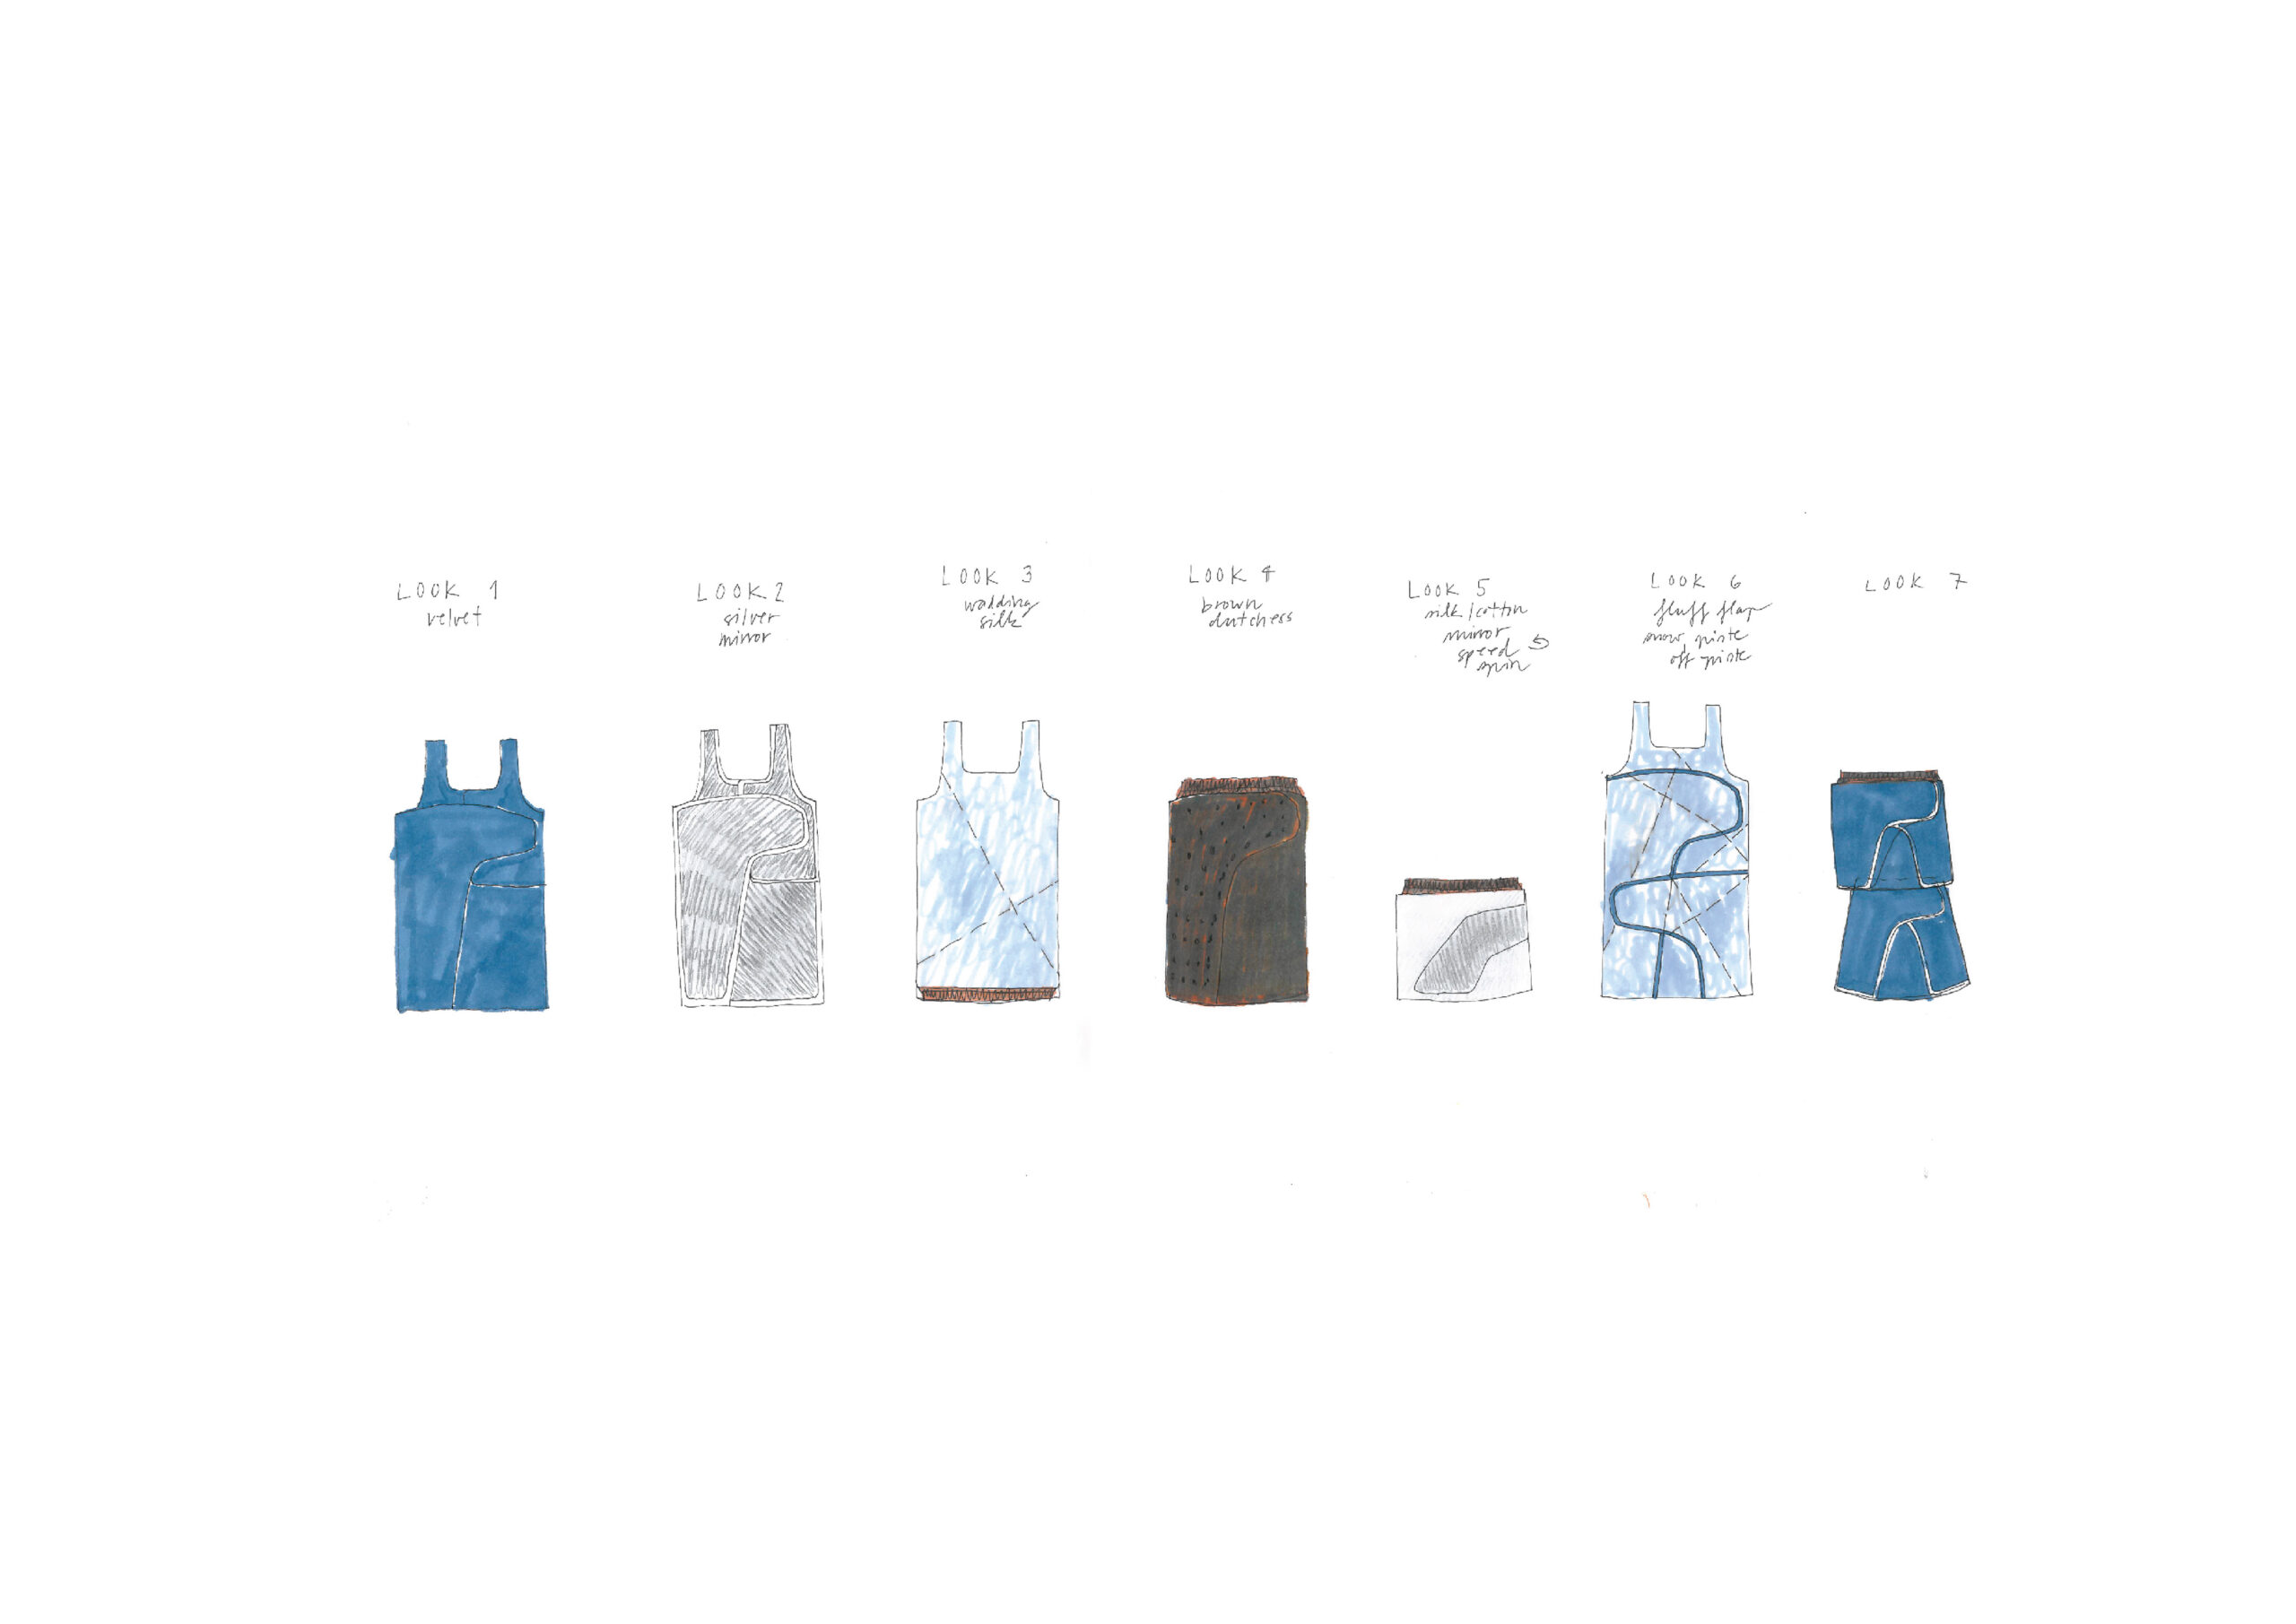 Cilka Sadar: From Olympic slopes to Archigram dresses